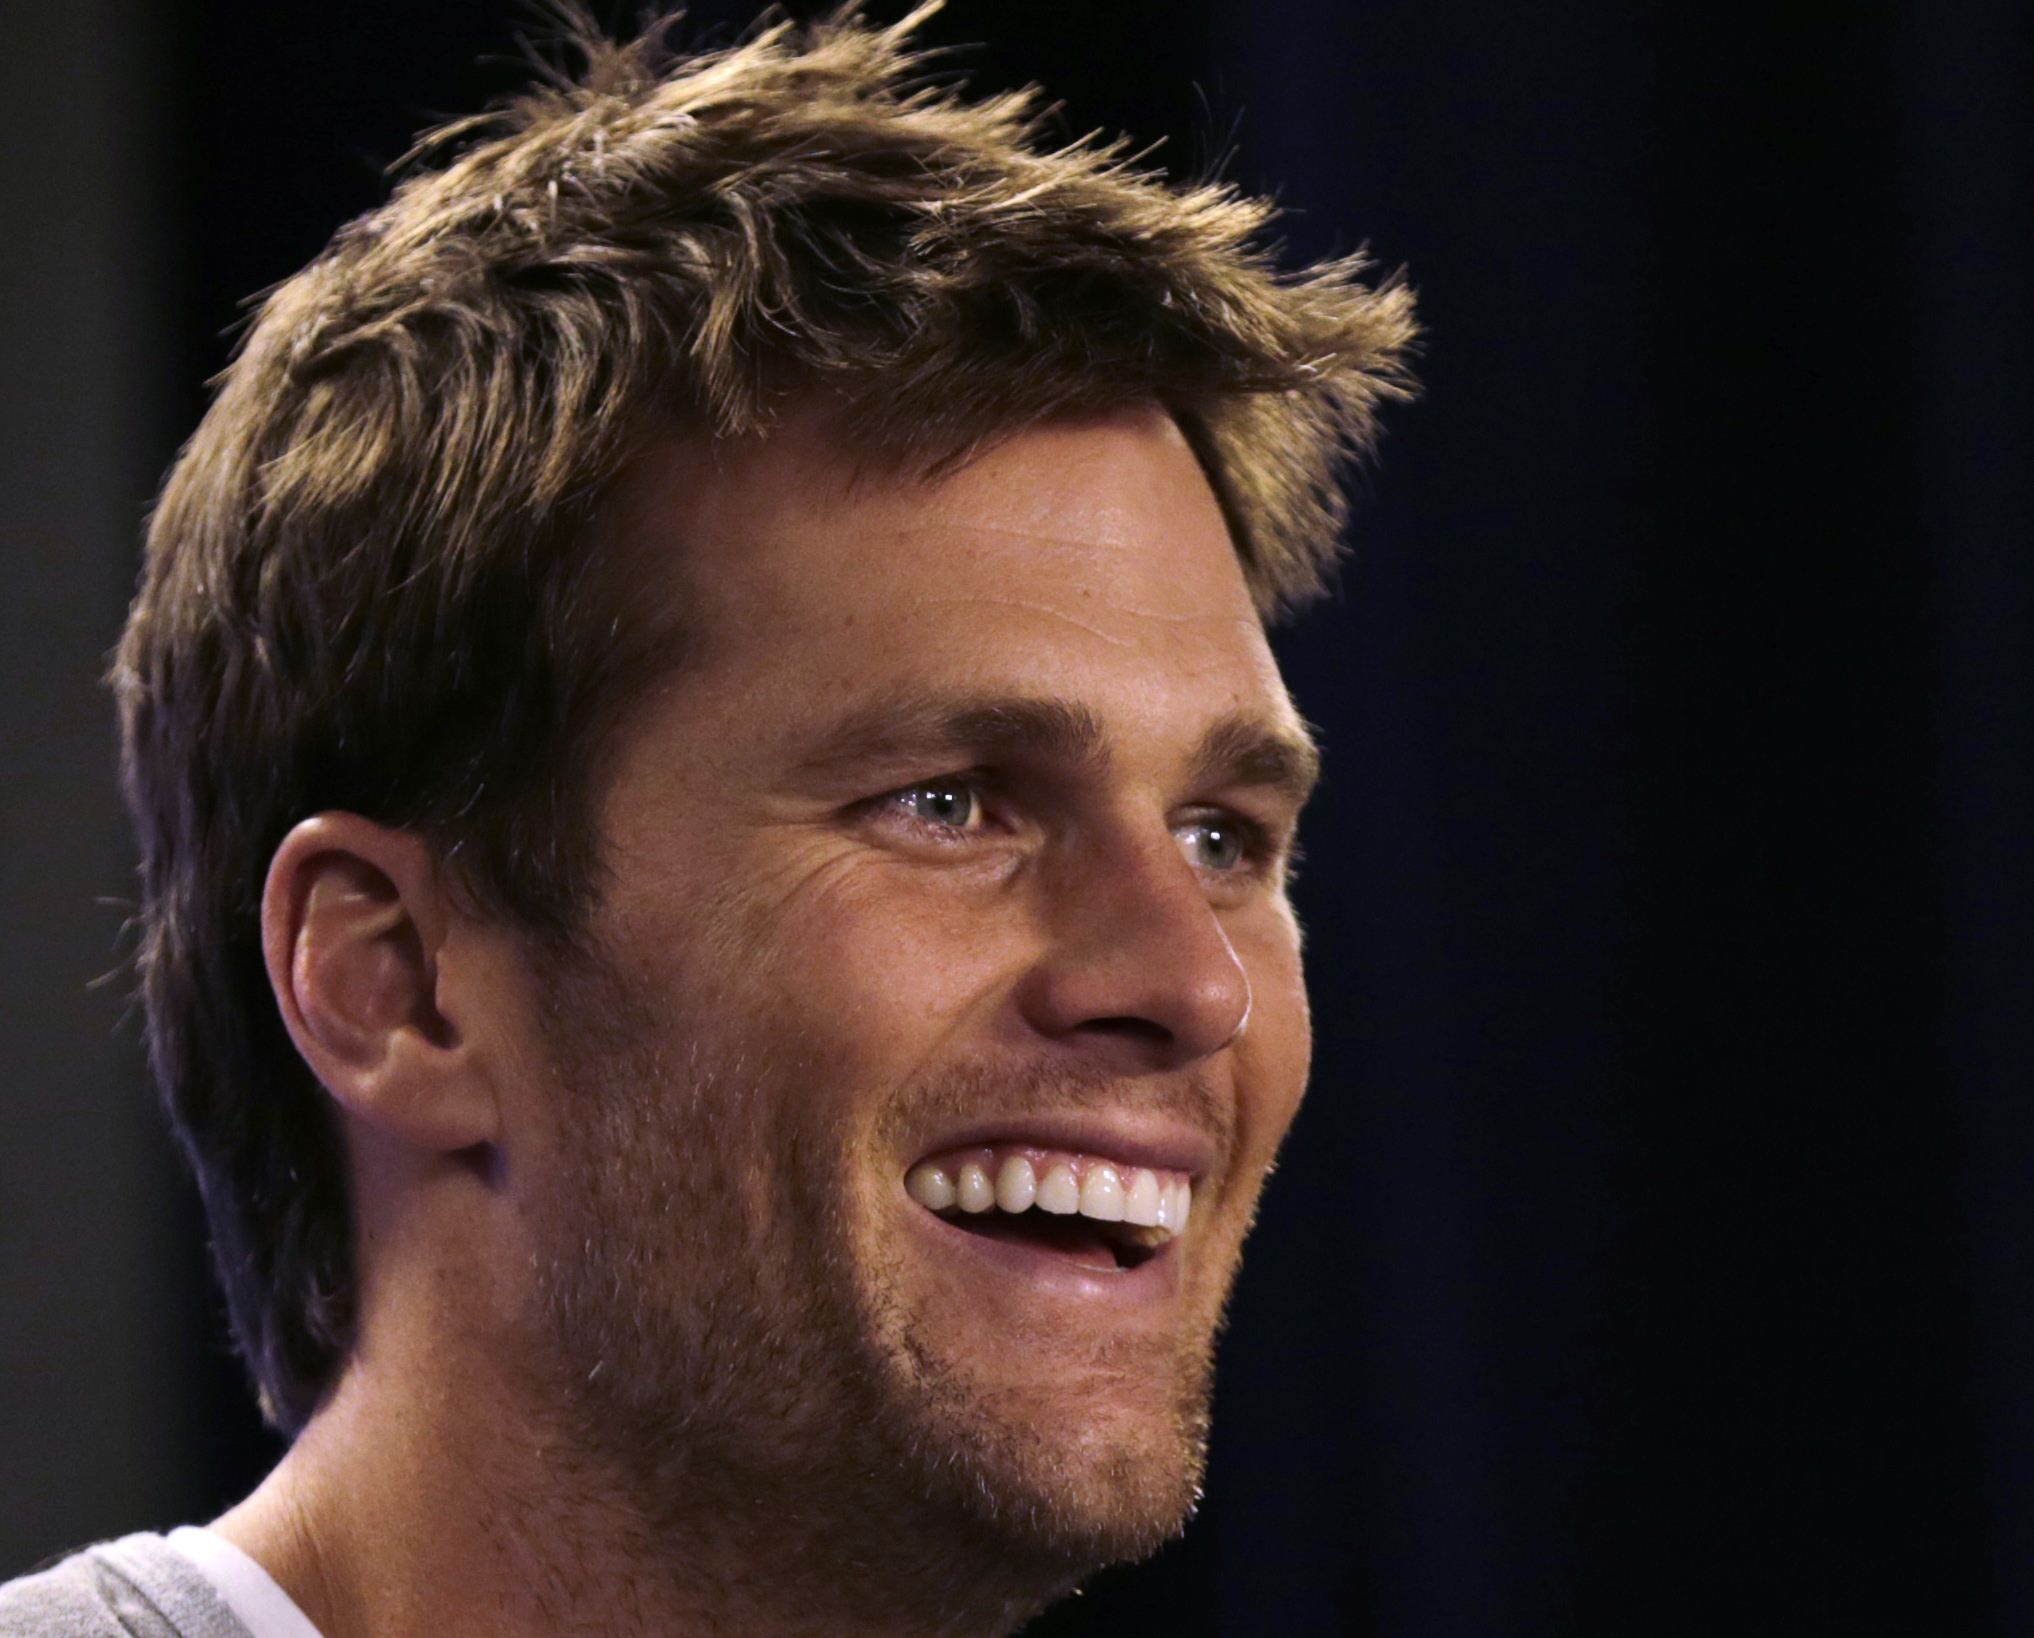 Tom Brady Hair Style by stevesalt.us